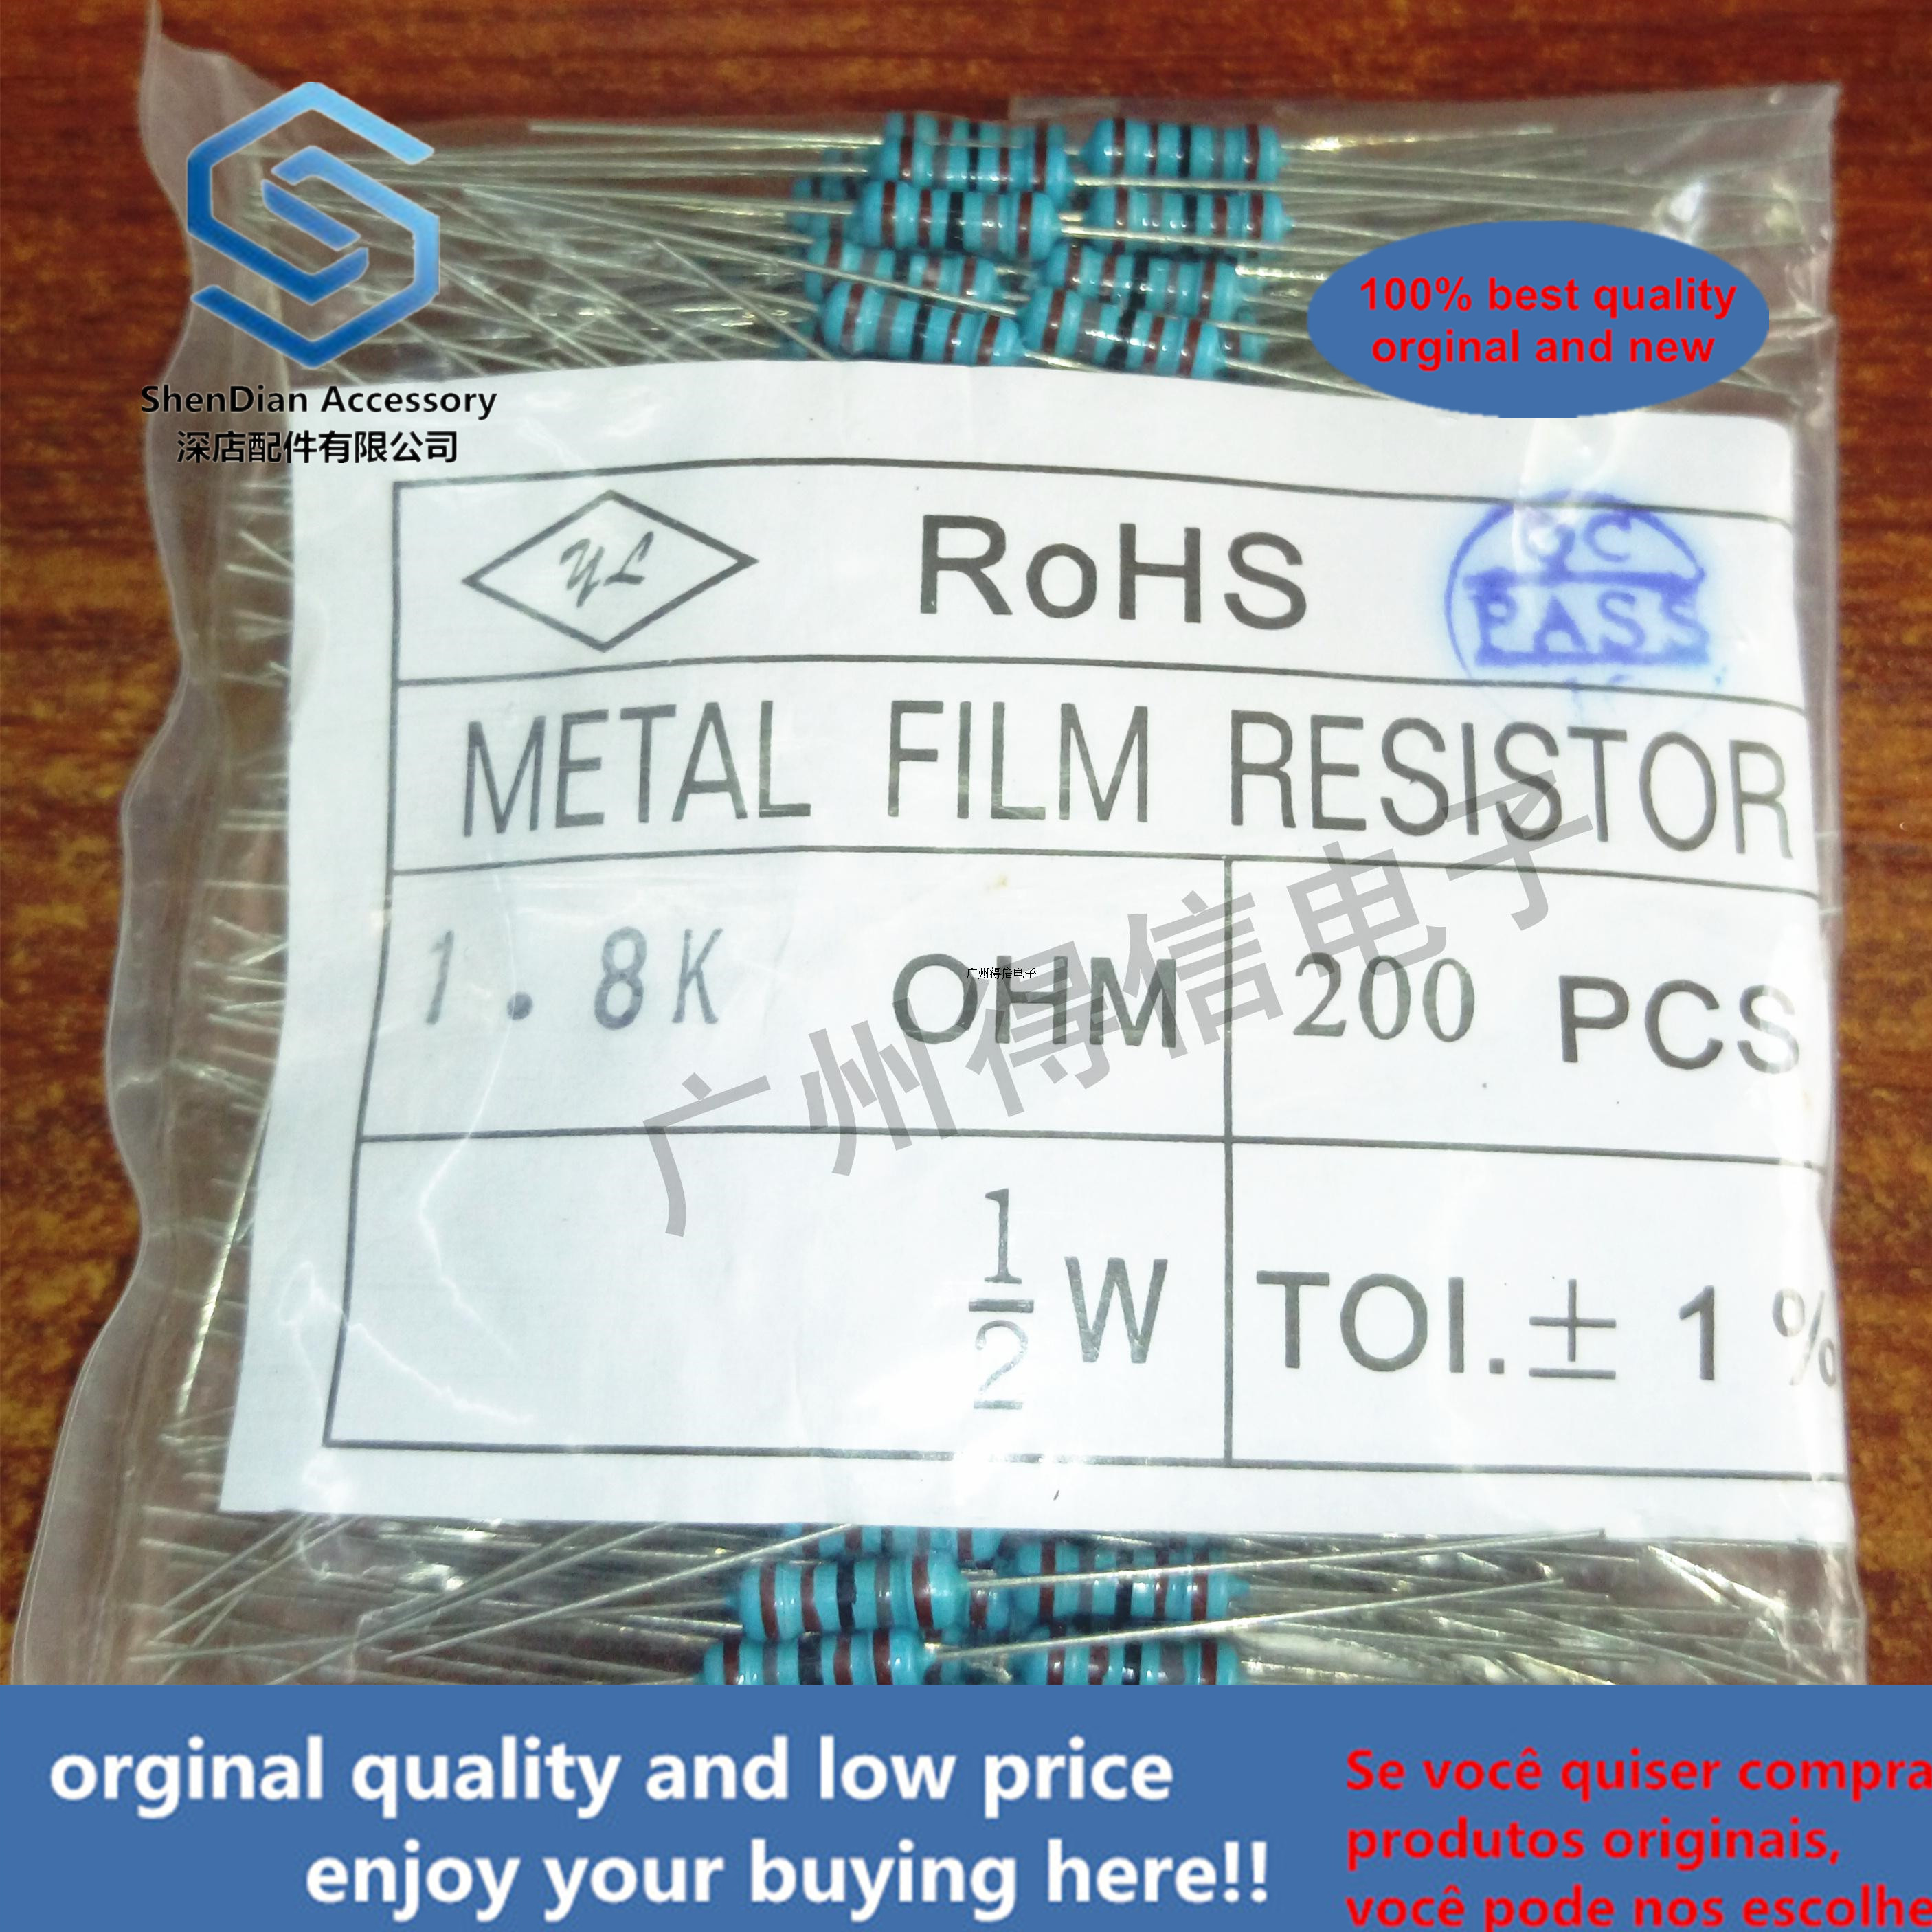 200pcs 1 / 2W 3K 3000 Euro 1% Brand New Metal Film Iron Feet Resistance Bag Pack 200 Pcs